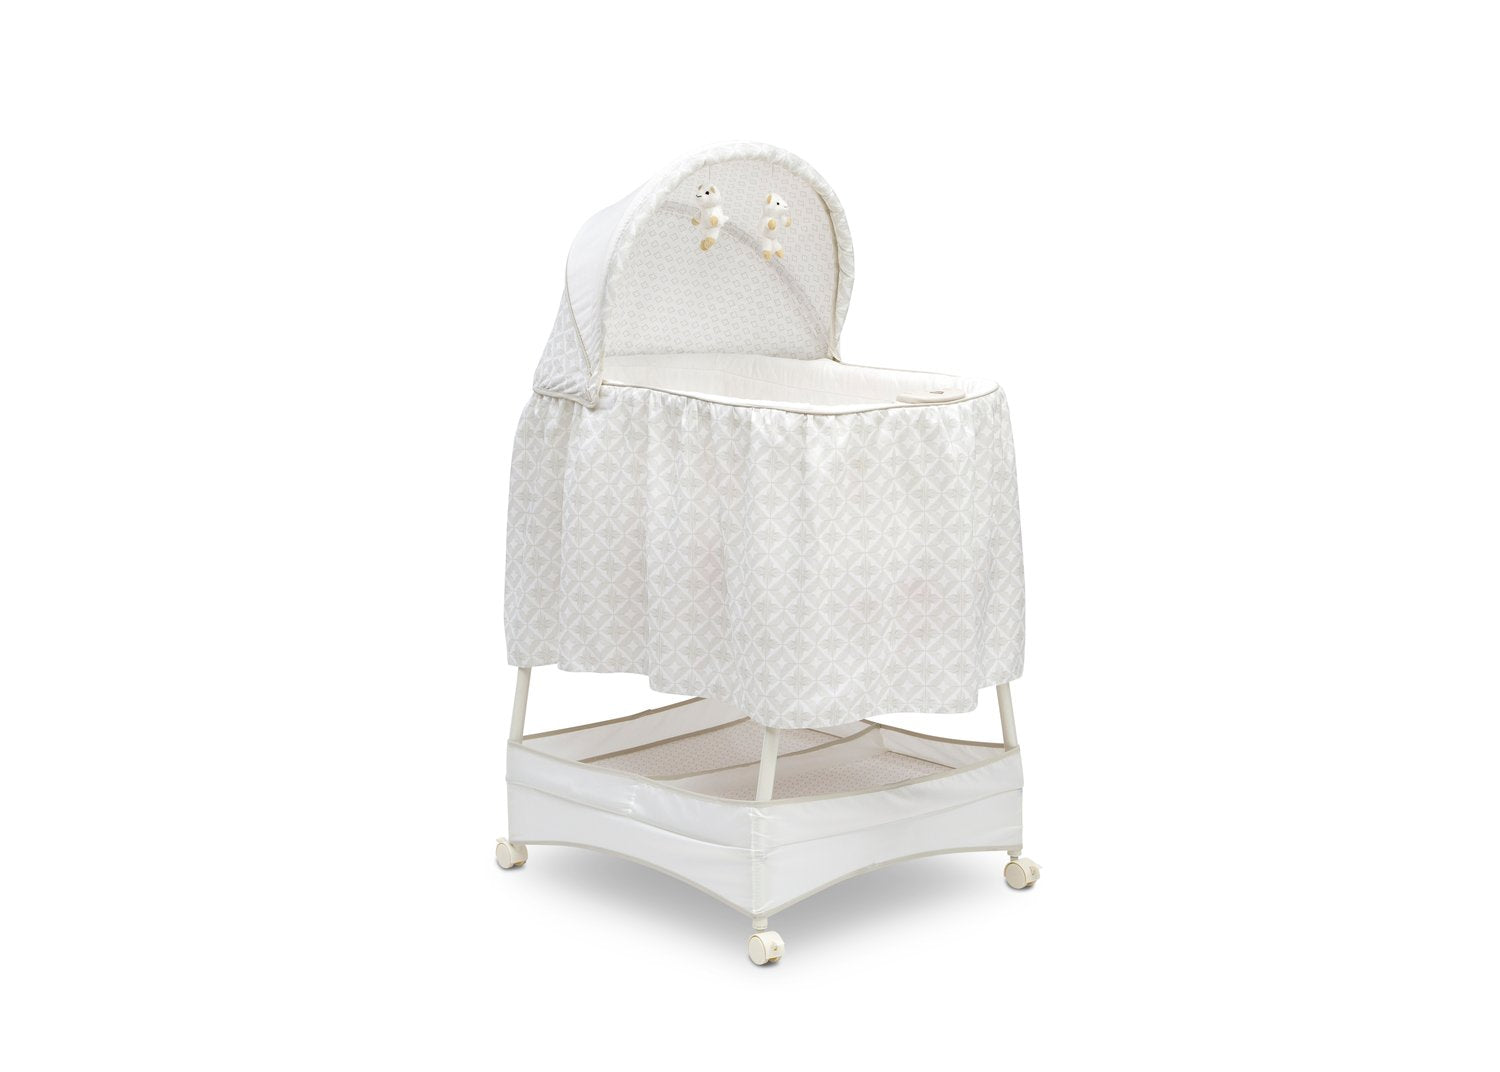 Delta Children Illusions (2067) Gliding Bassinet Right Silo View